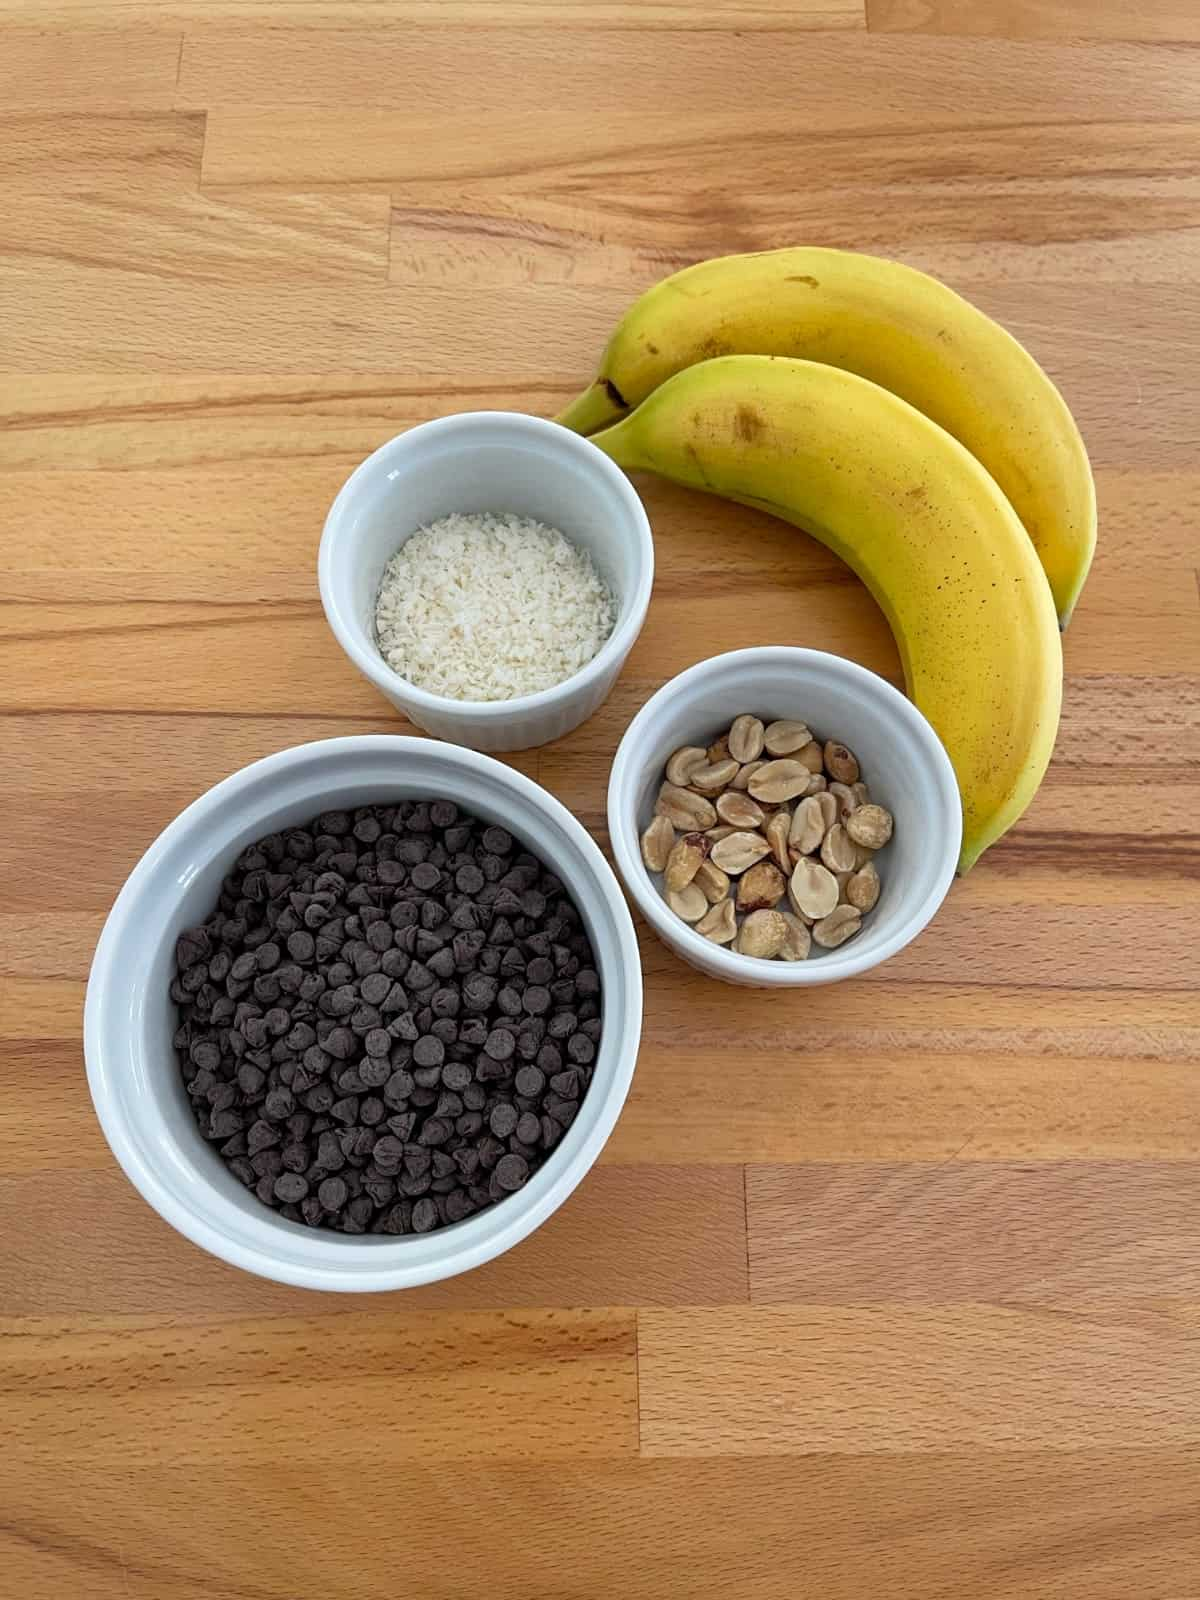 Two bananas, mini chocolate chips, shredded coconut and peanuts on wooden table.